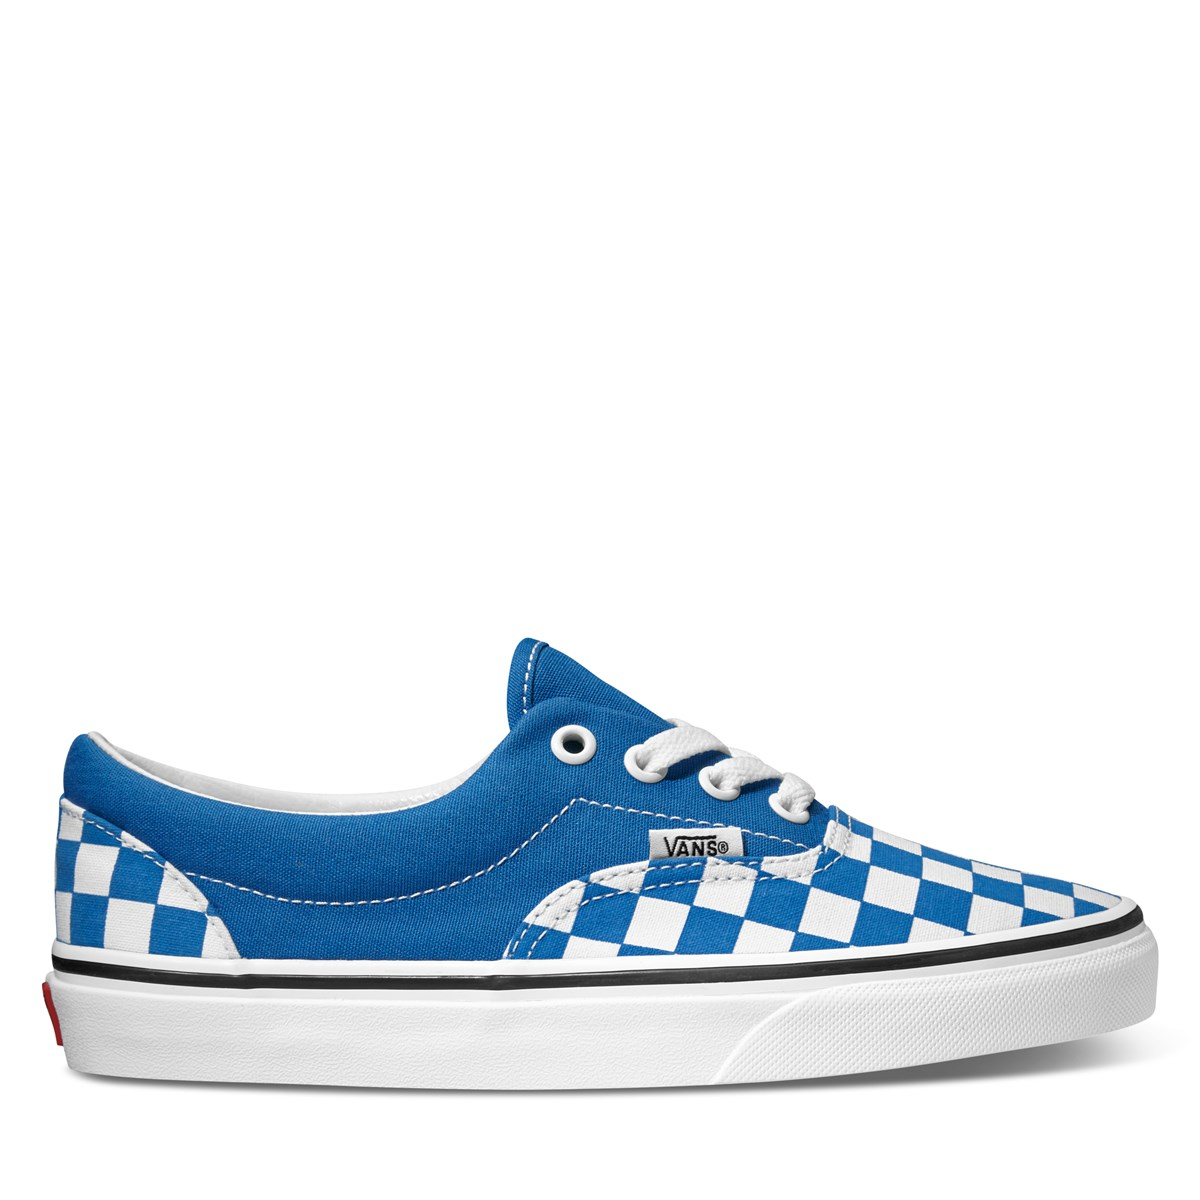 Women's Era Sneaker in Blue Checkerboard